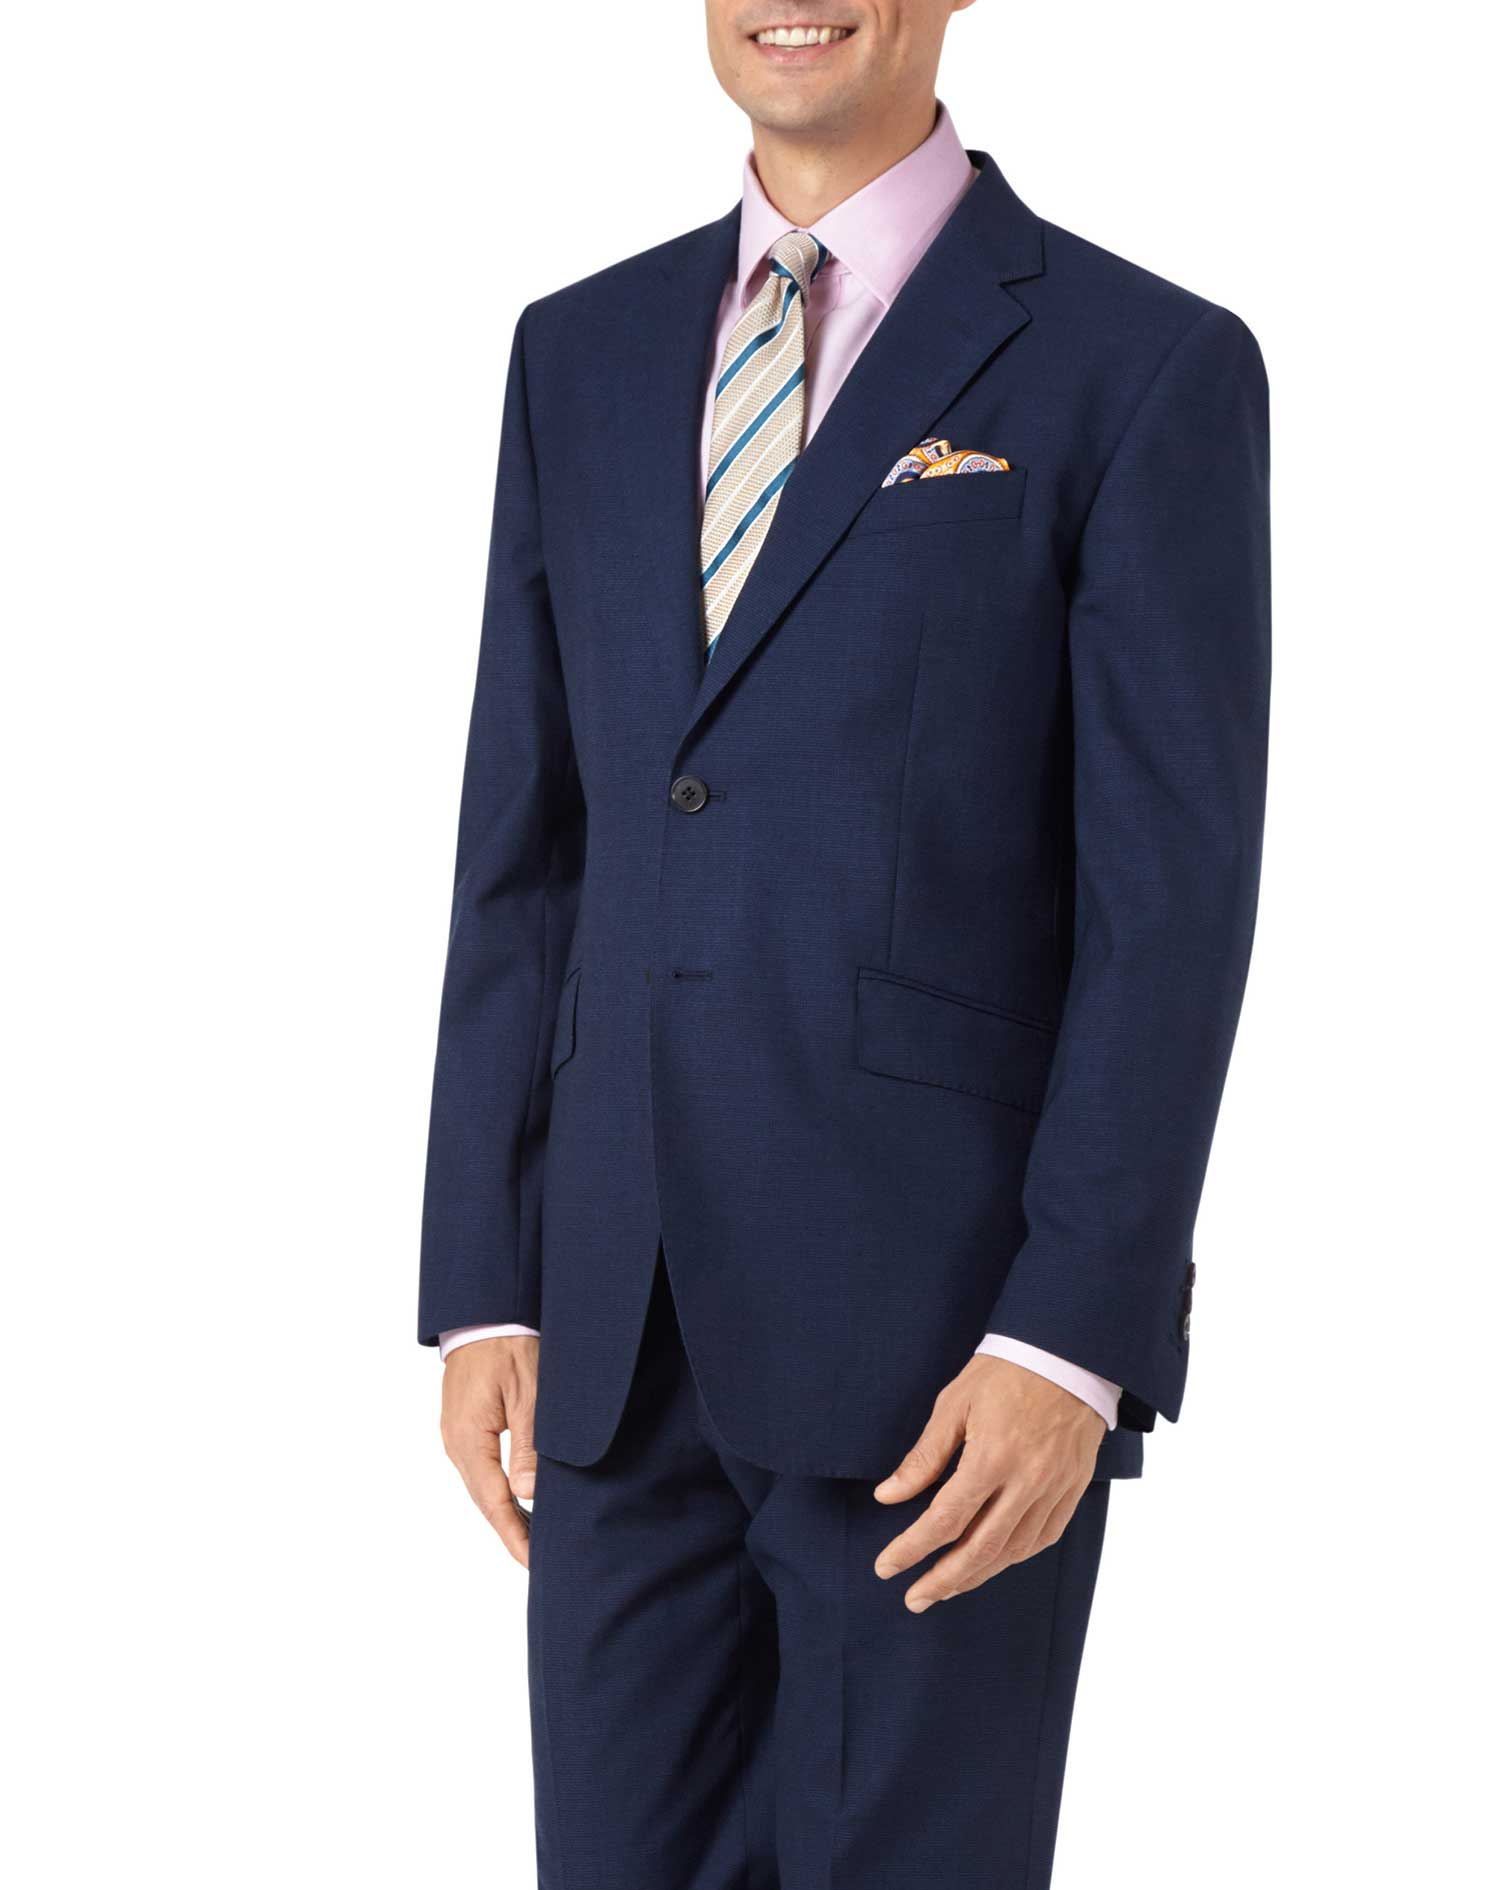 Indigo Blue Classic Fit Panama Puppytooth Business Suit Wool Jacket Size 44 Short by Charles Tyrwhit